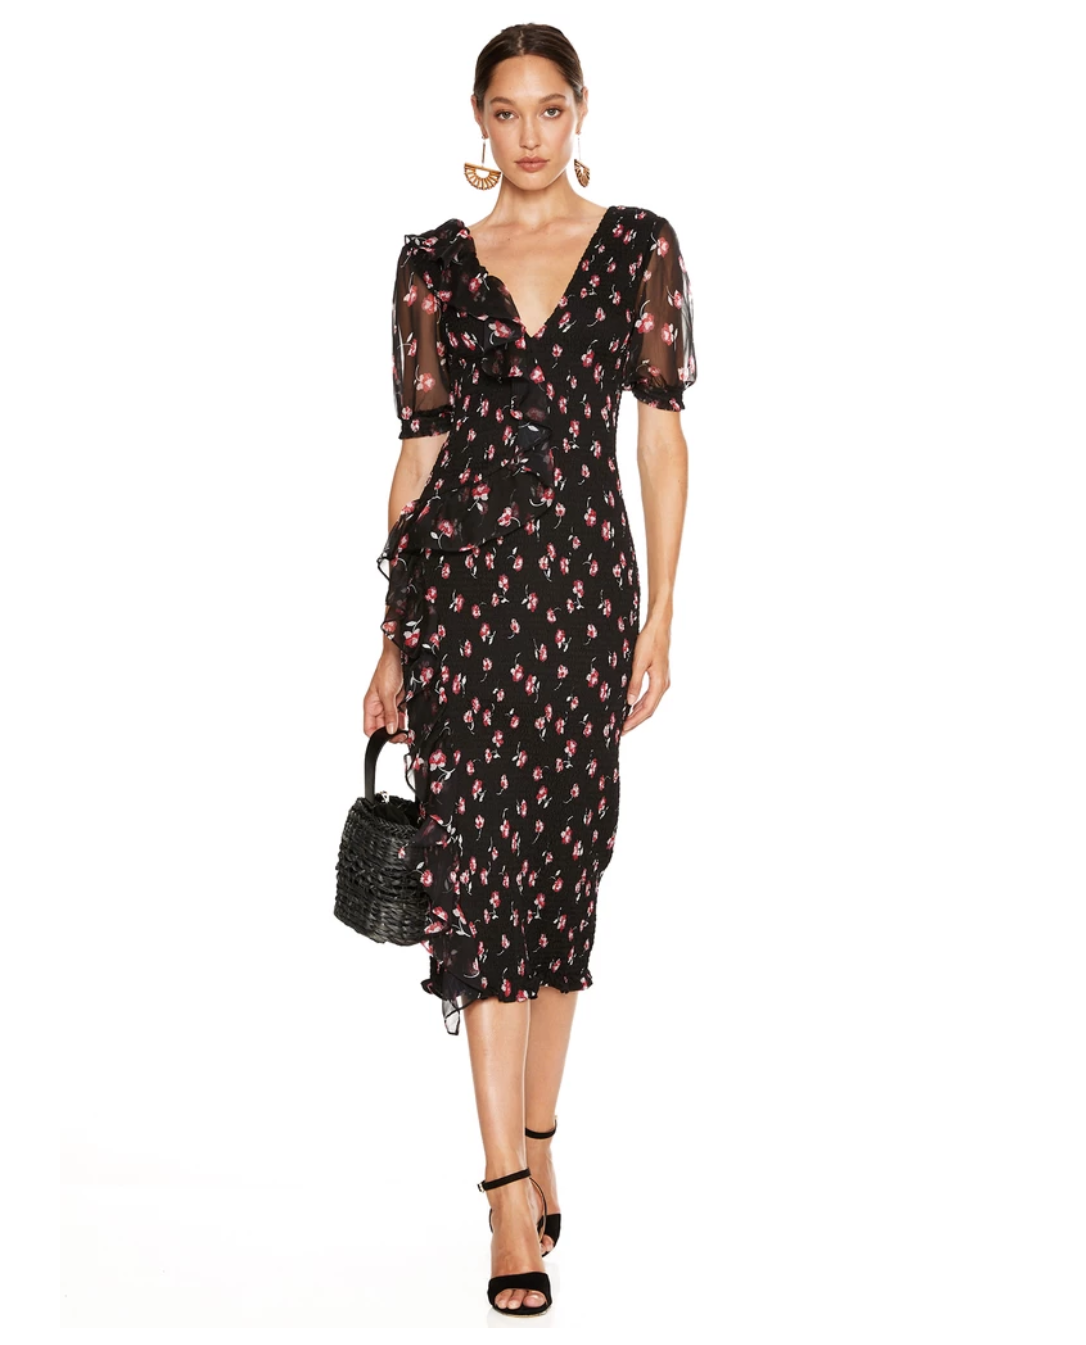 Talulah Incognito Midi Dress